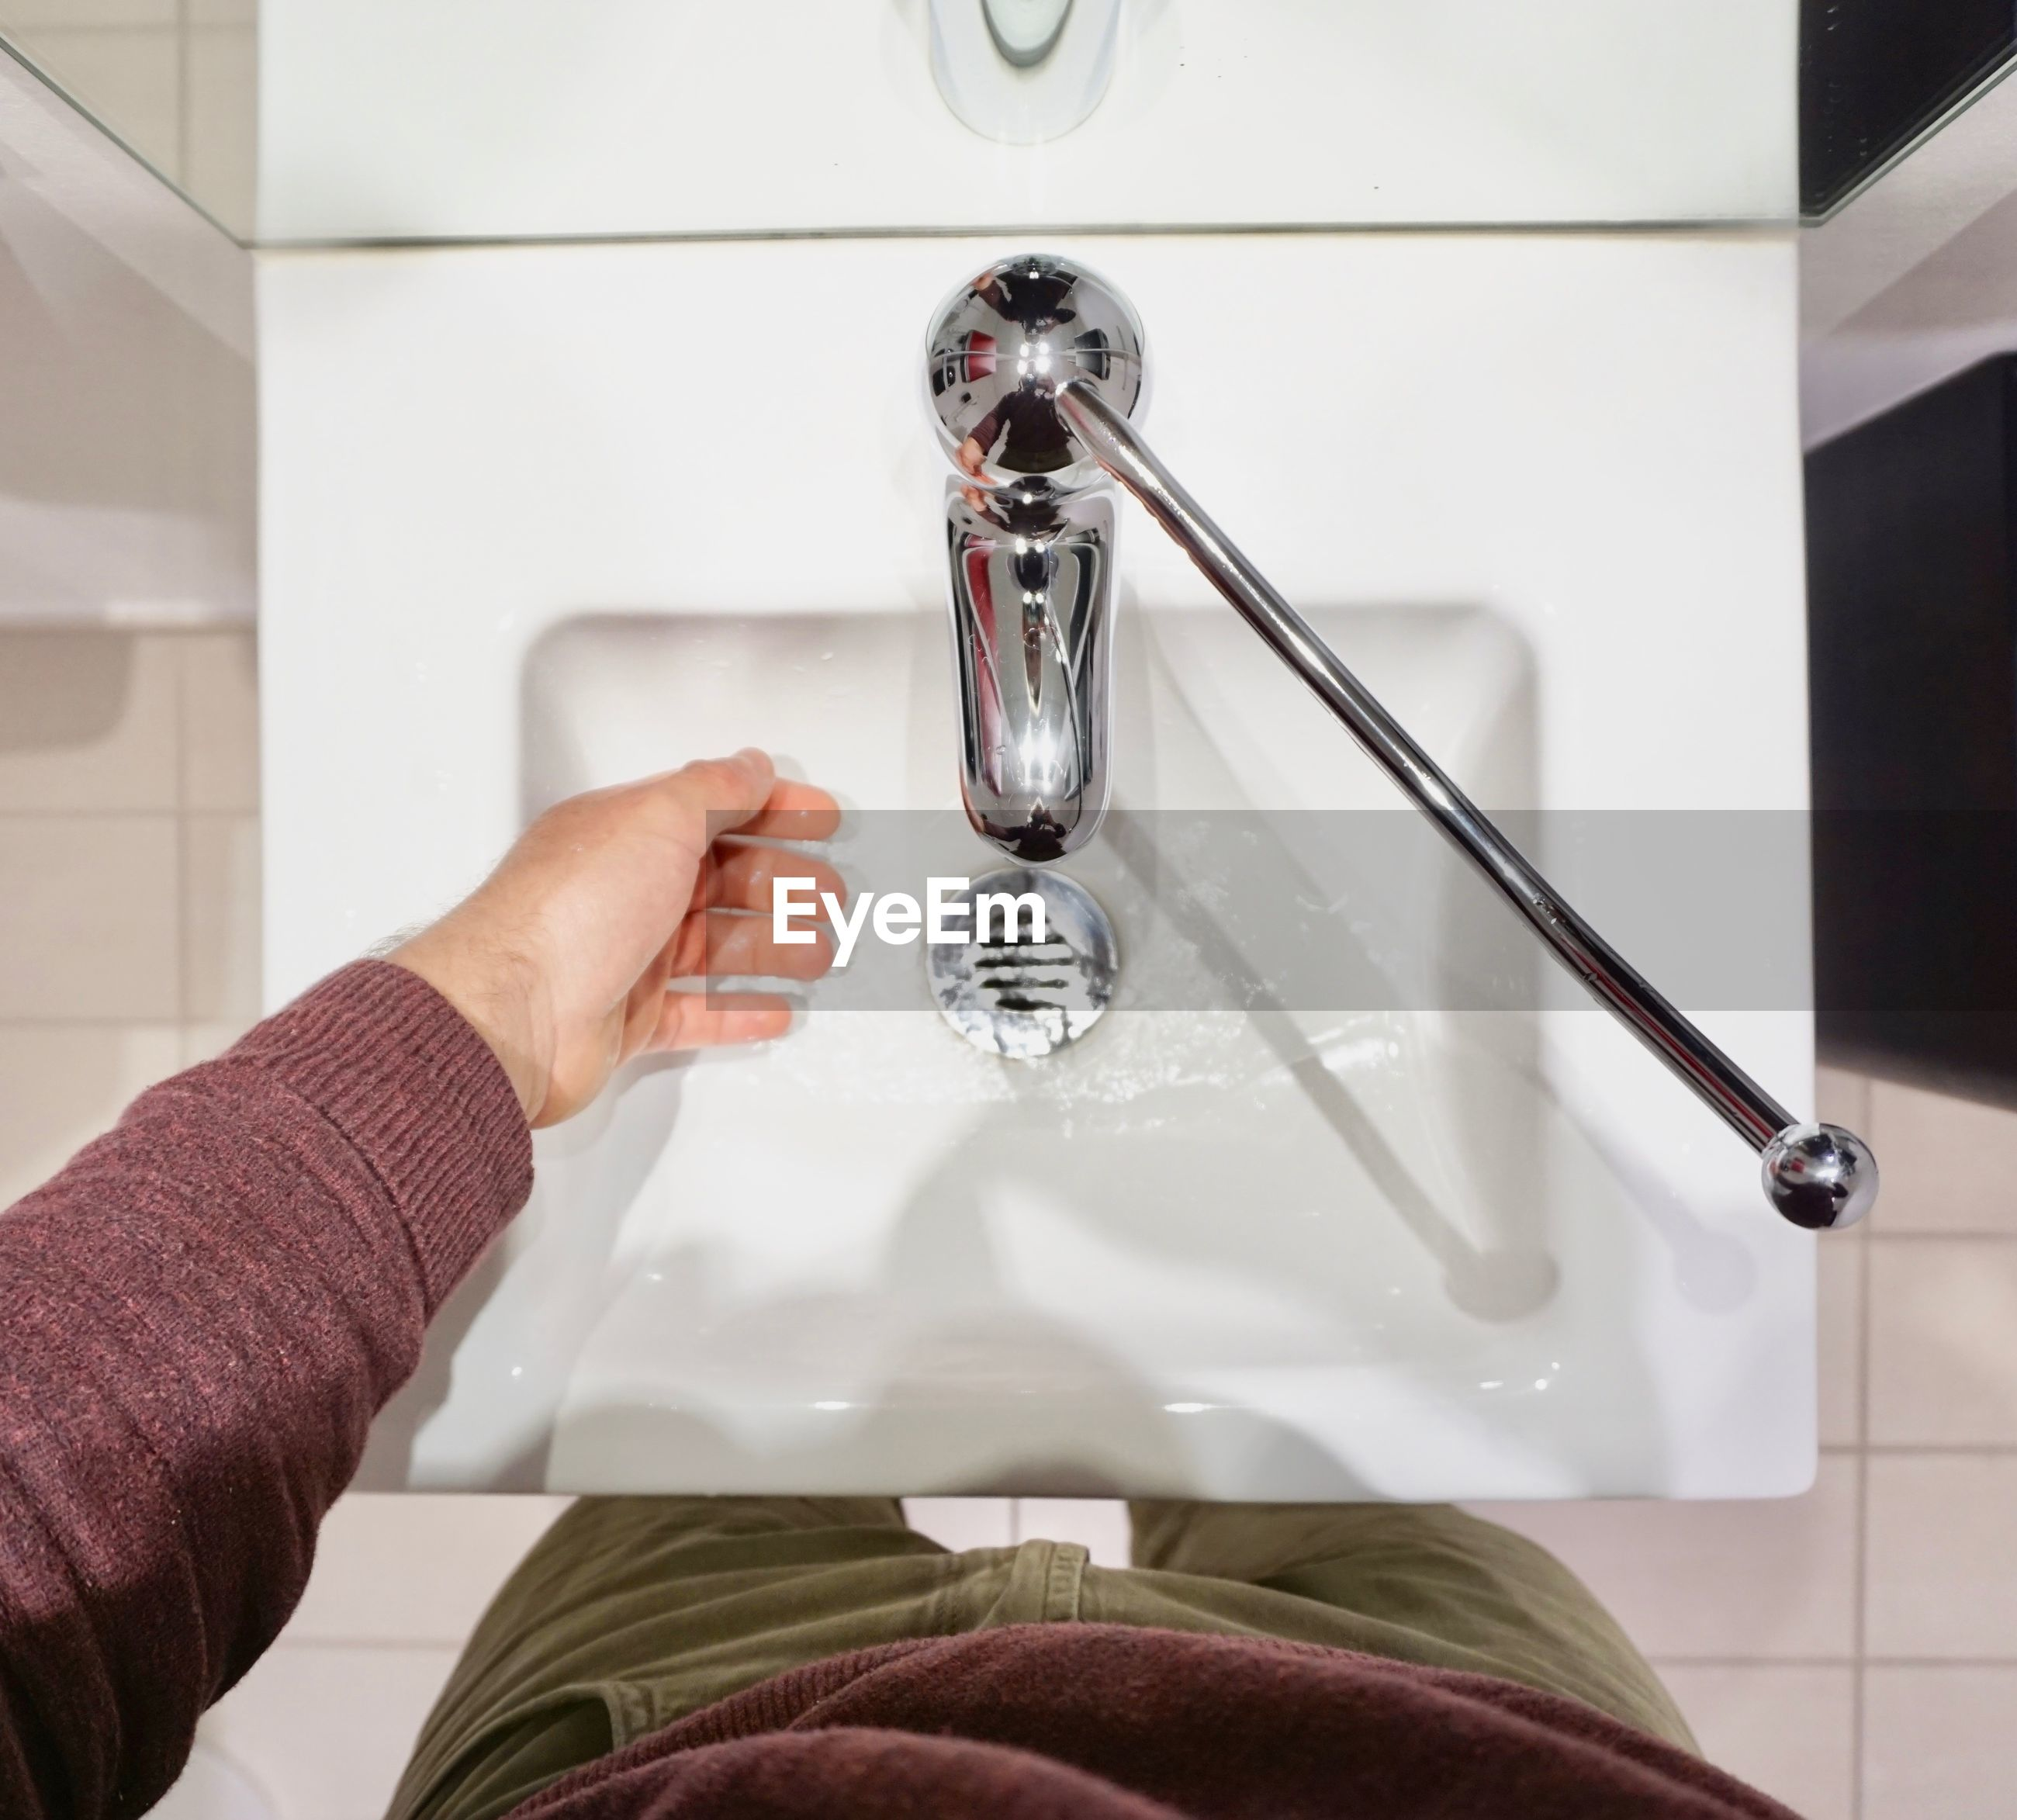 CLOSE-UP OF WOMAN HAND WITH FAUCET